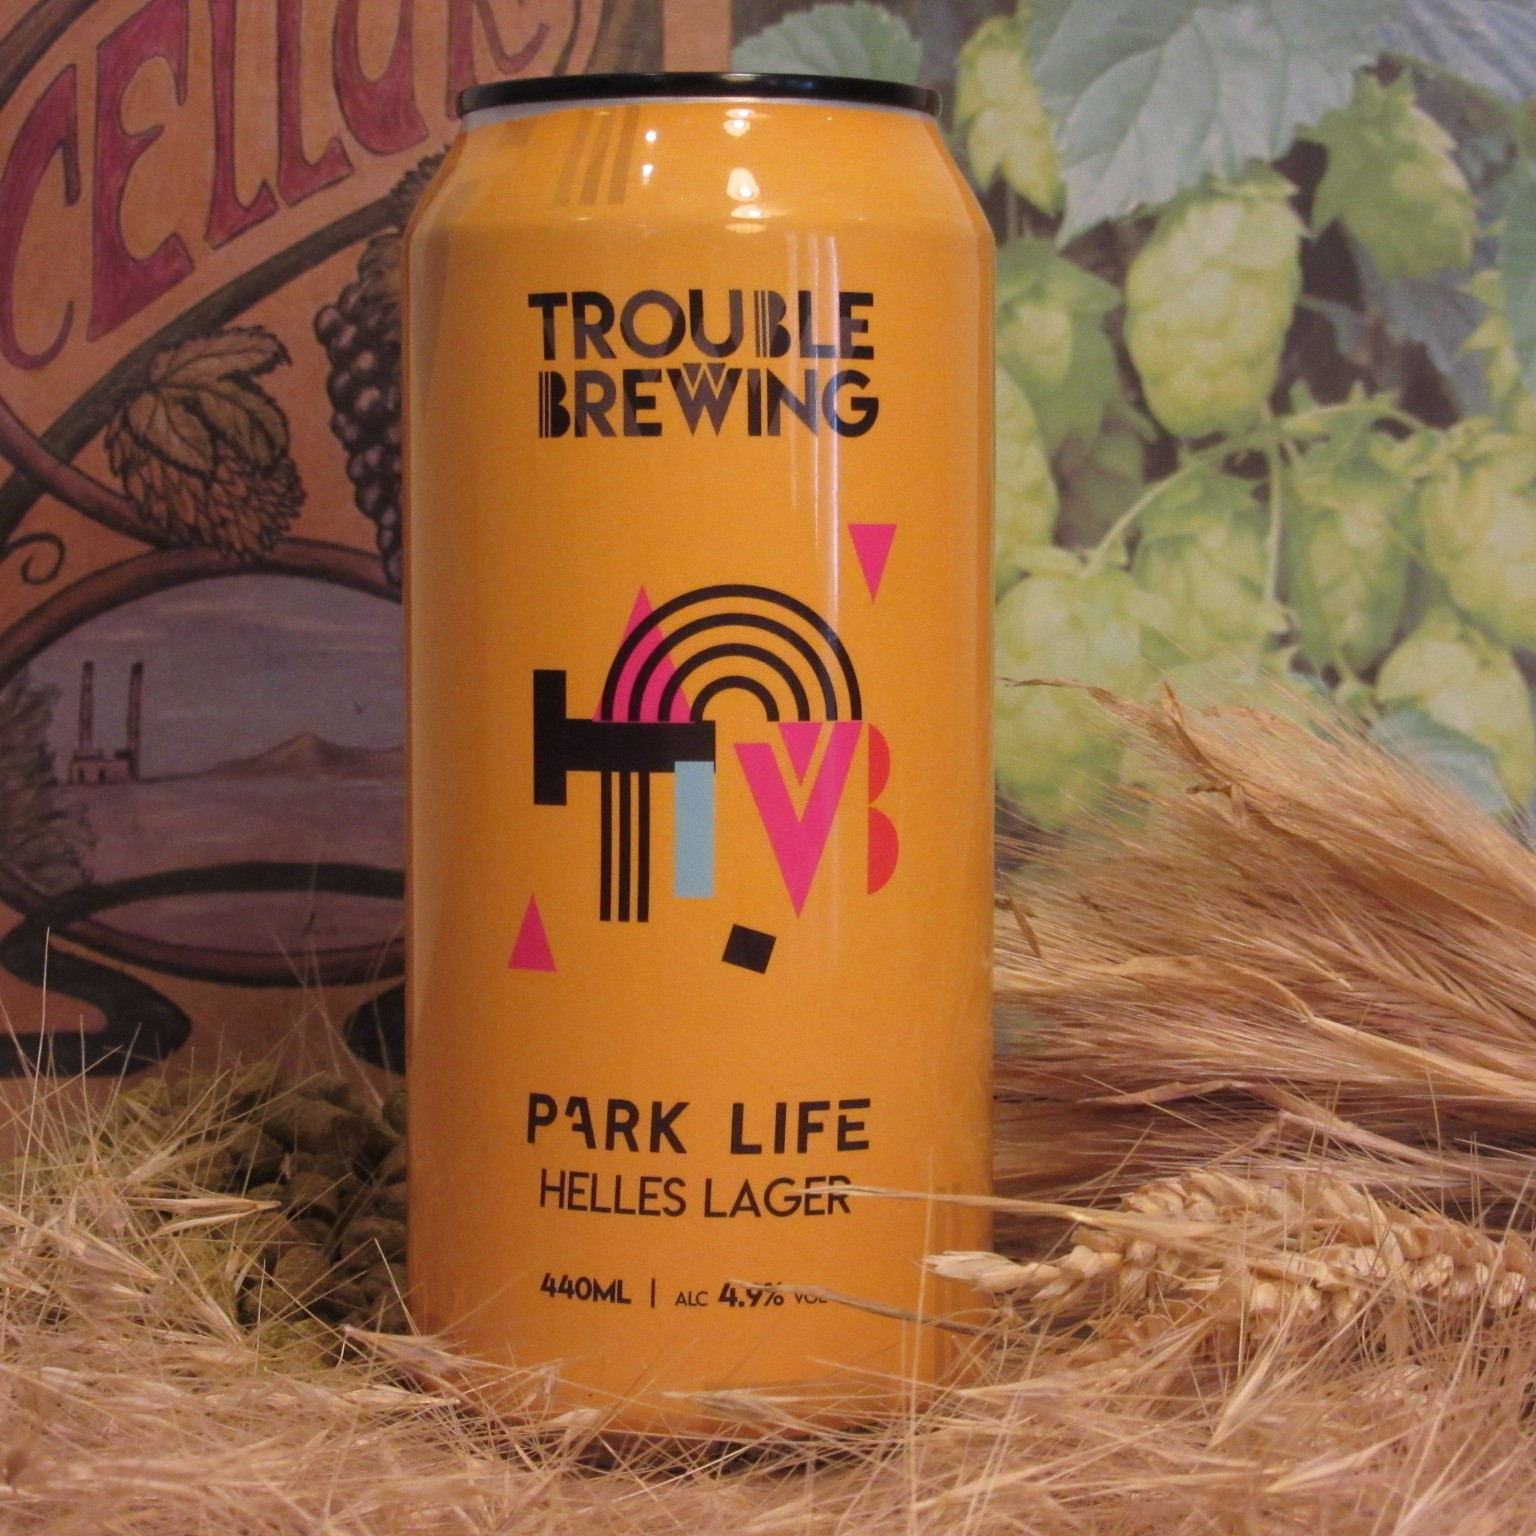 Trouble Brewing Park Life Helles Lager